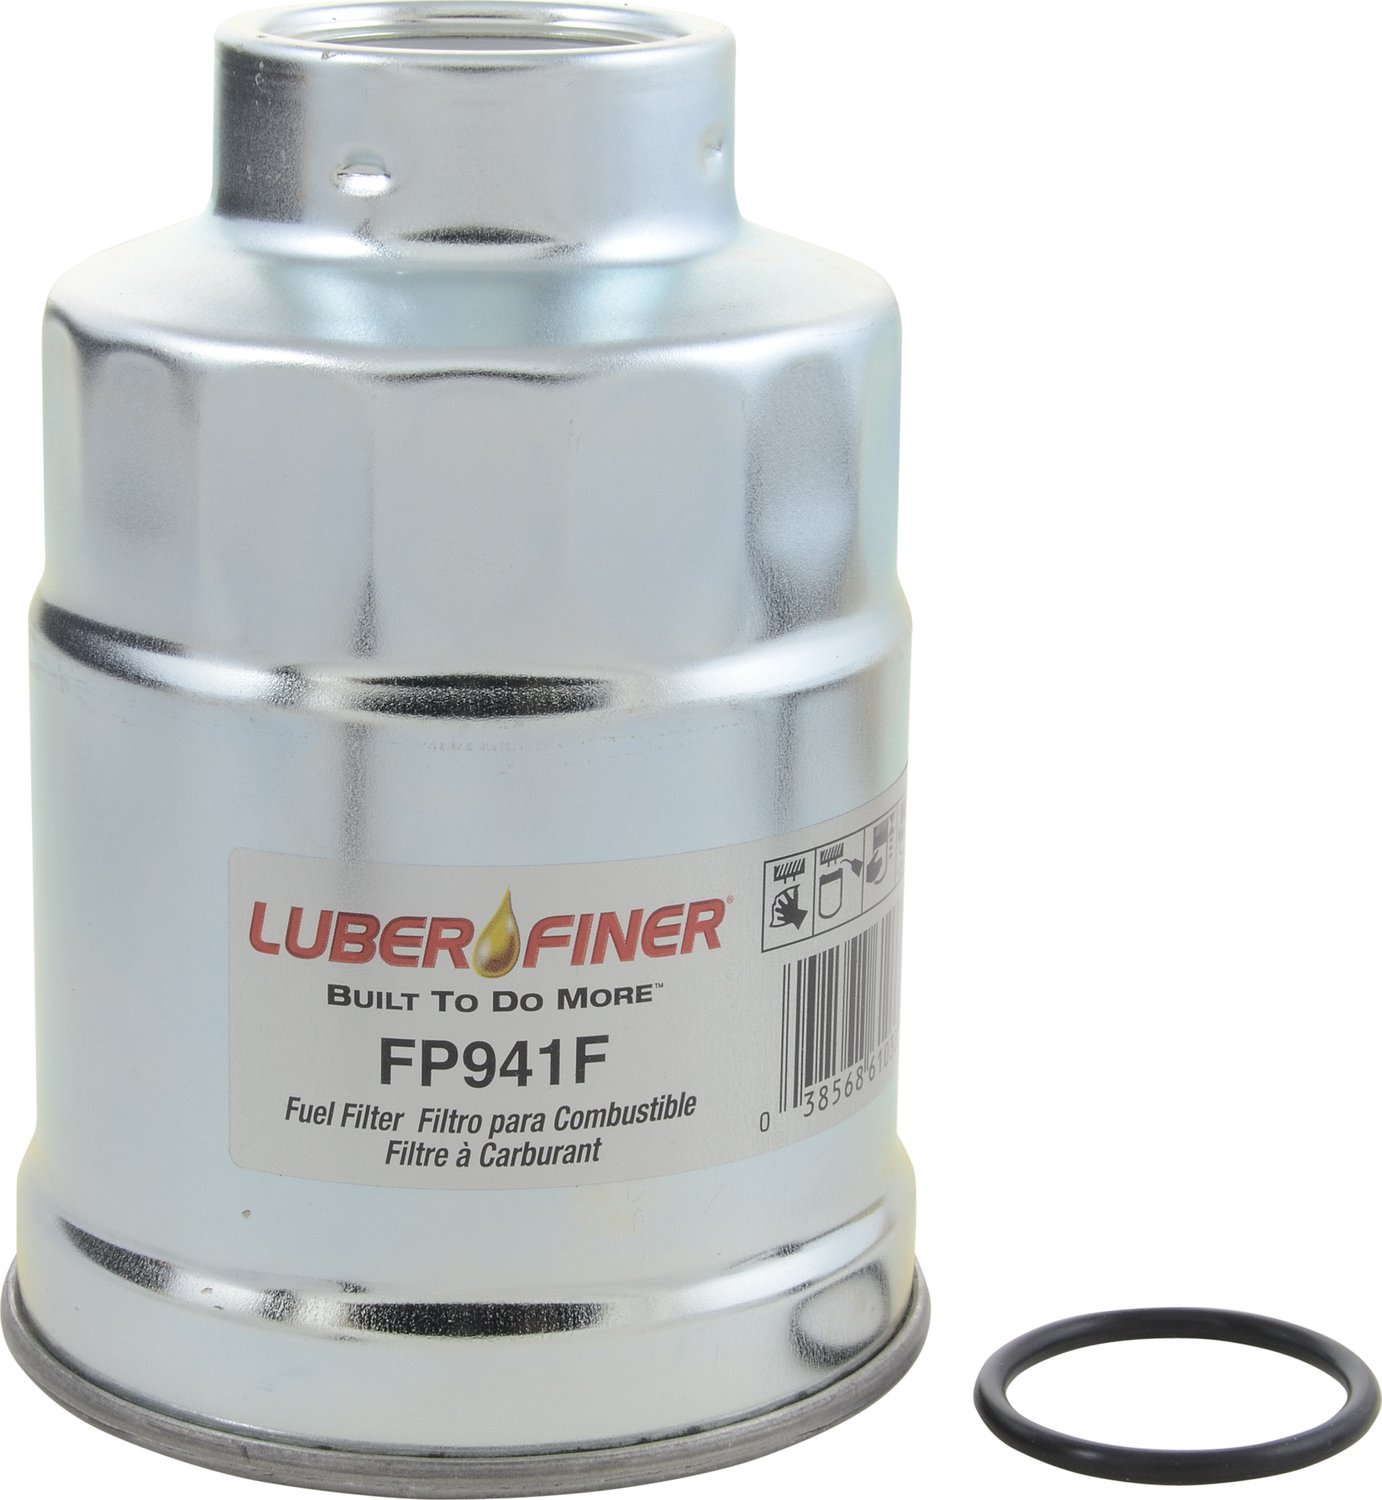 Luber Finer Fp941f Heavy Duty Fuel Filter Automotive 2015 Jeep Wrangler